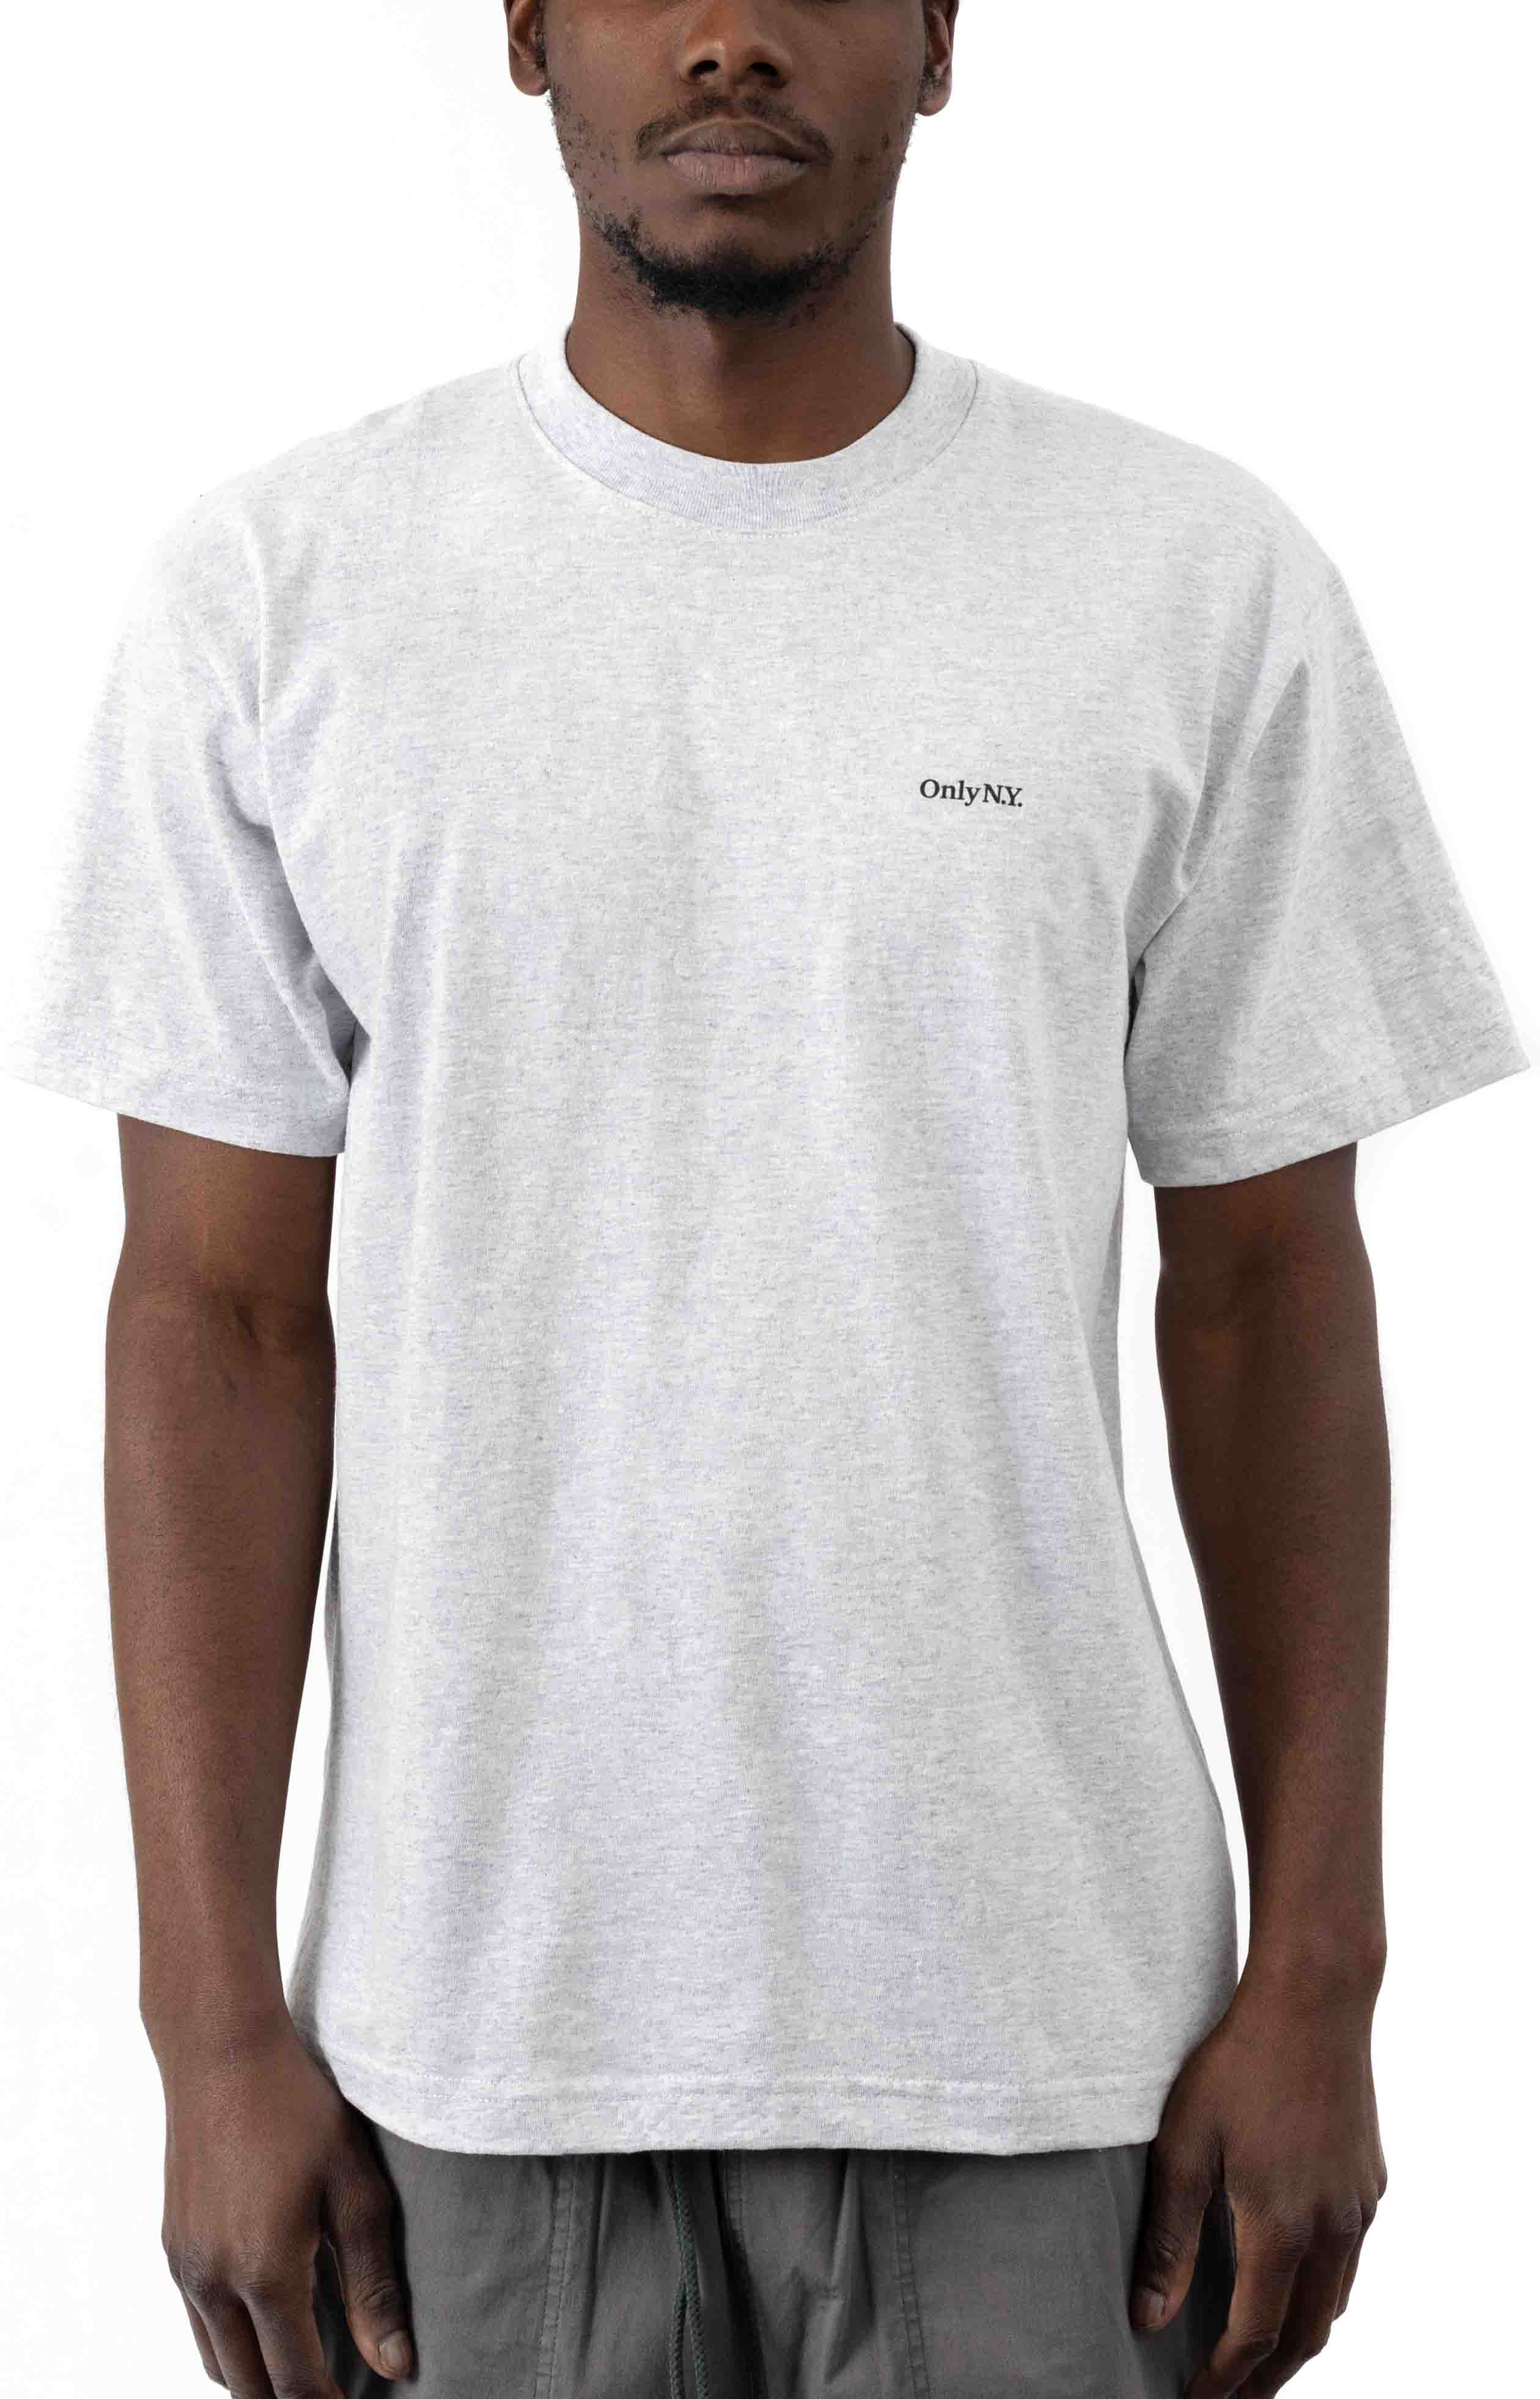 Gulls T-Shirt - White  2